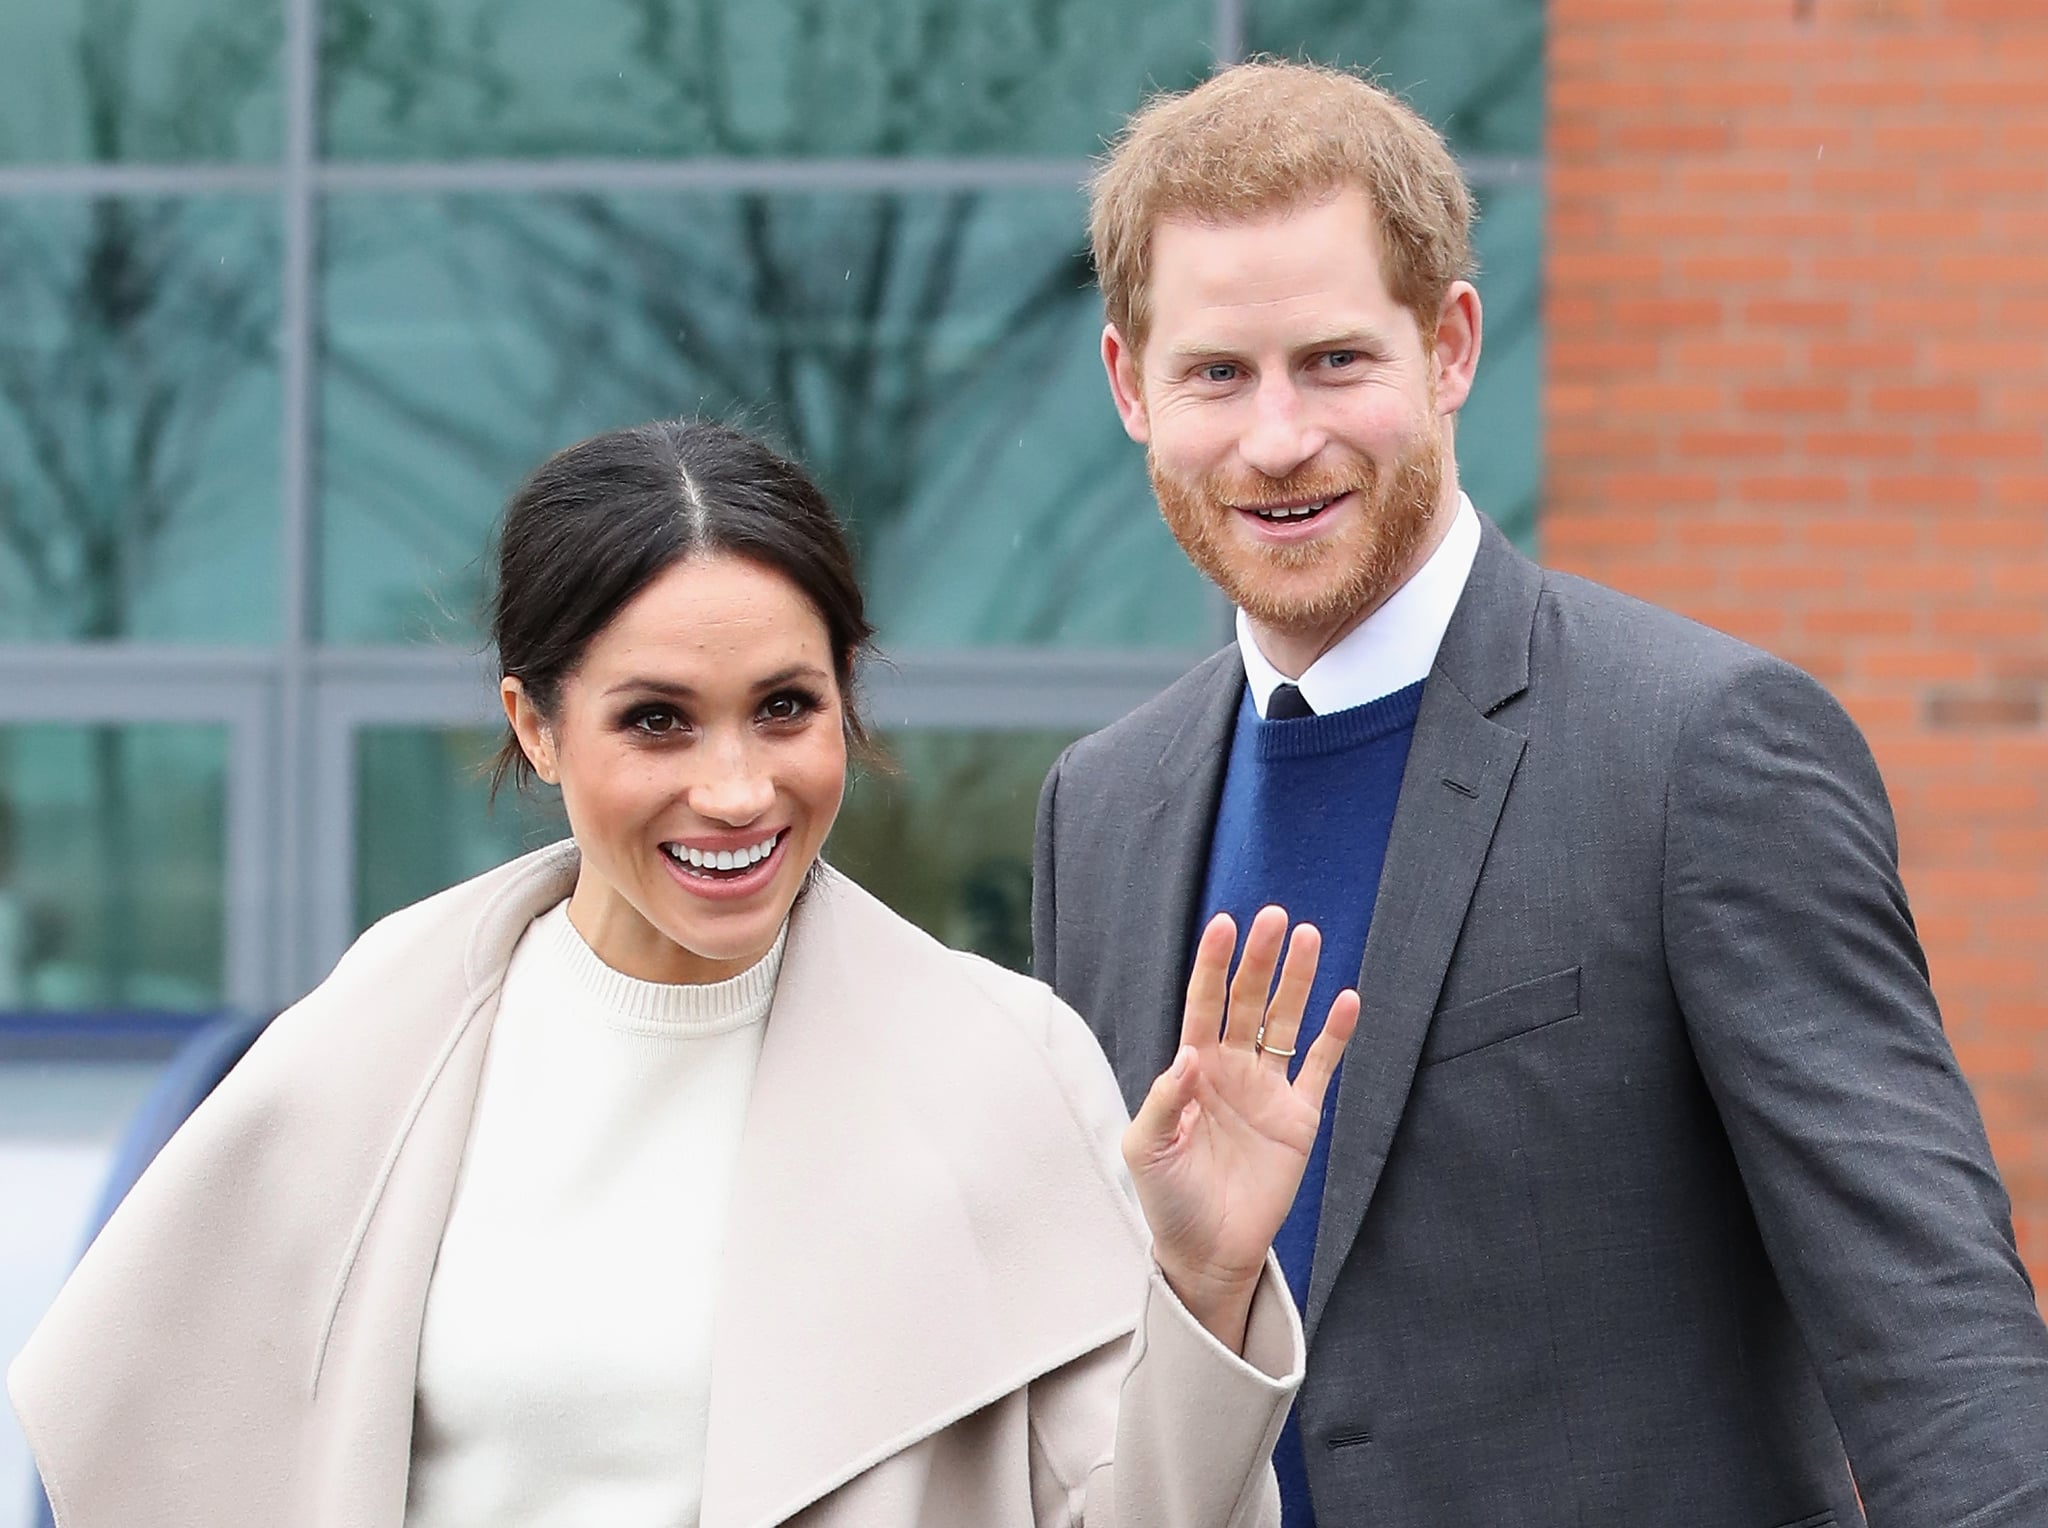 BELFAST, NORTHERN IRELAND - MARCH 23:  Prince Harry and Meghan Markle depart from Catalyst Inc, Northern Ireland?s next generation science park on March 23, 2018 in Belfast, Nothern Ireland.  (Photo by Chris Jackson - Pool/Getty Images)